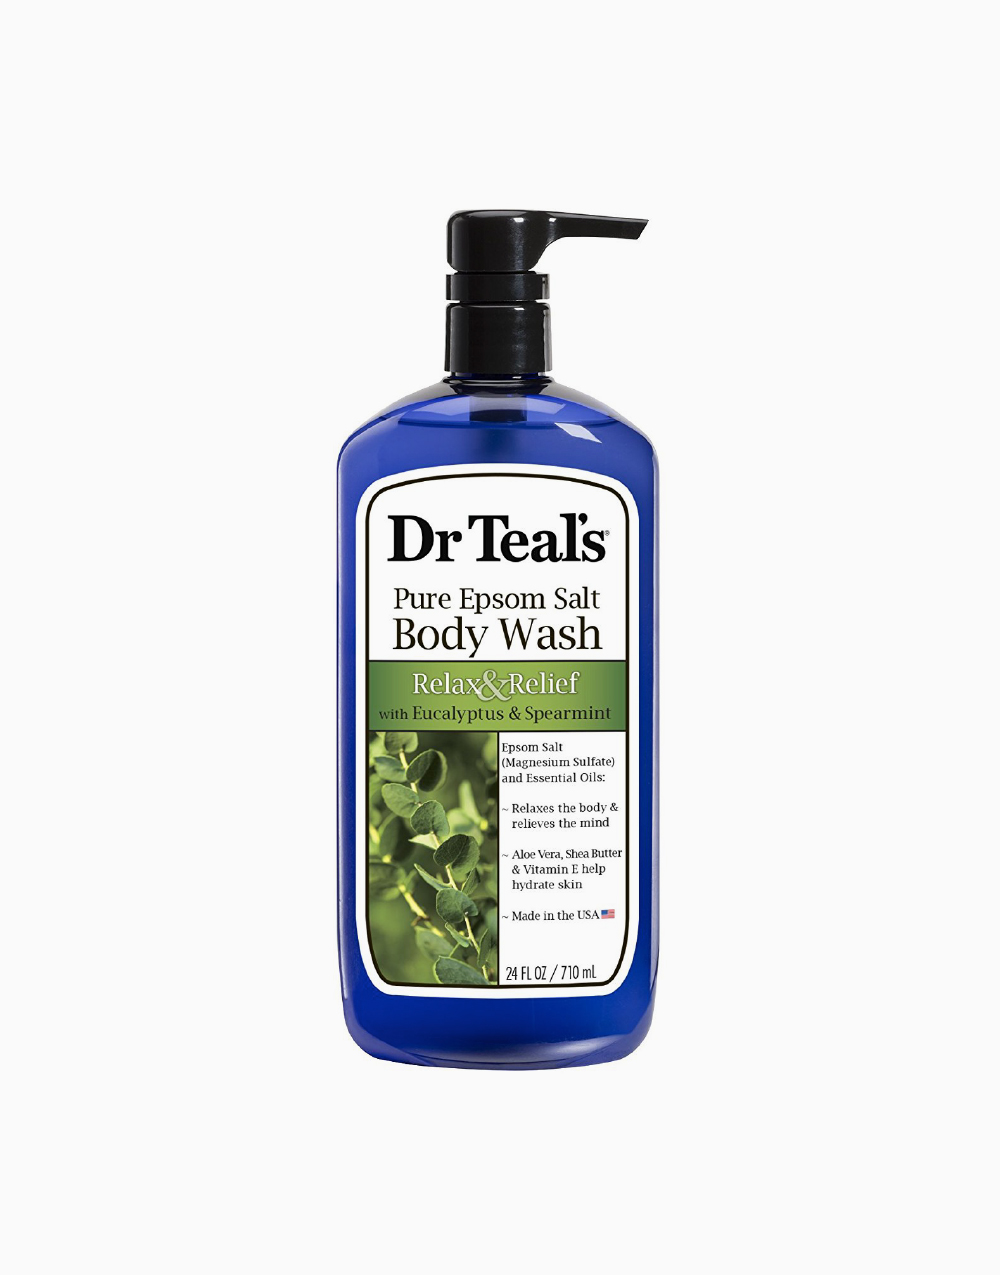 Pure Epsom Salt Body Wash With Eucalyptus and Spearmint by Dr. Teal's